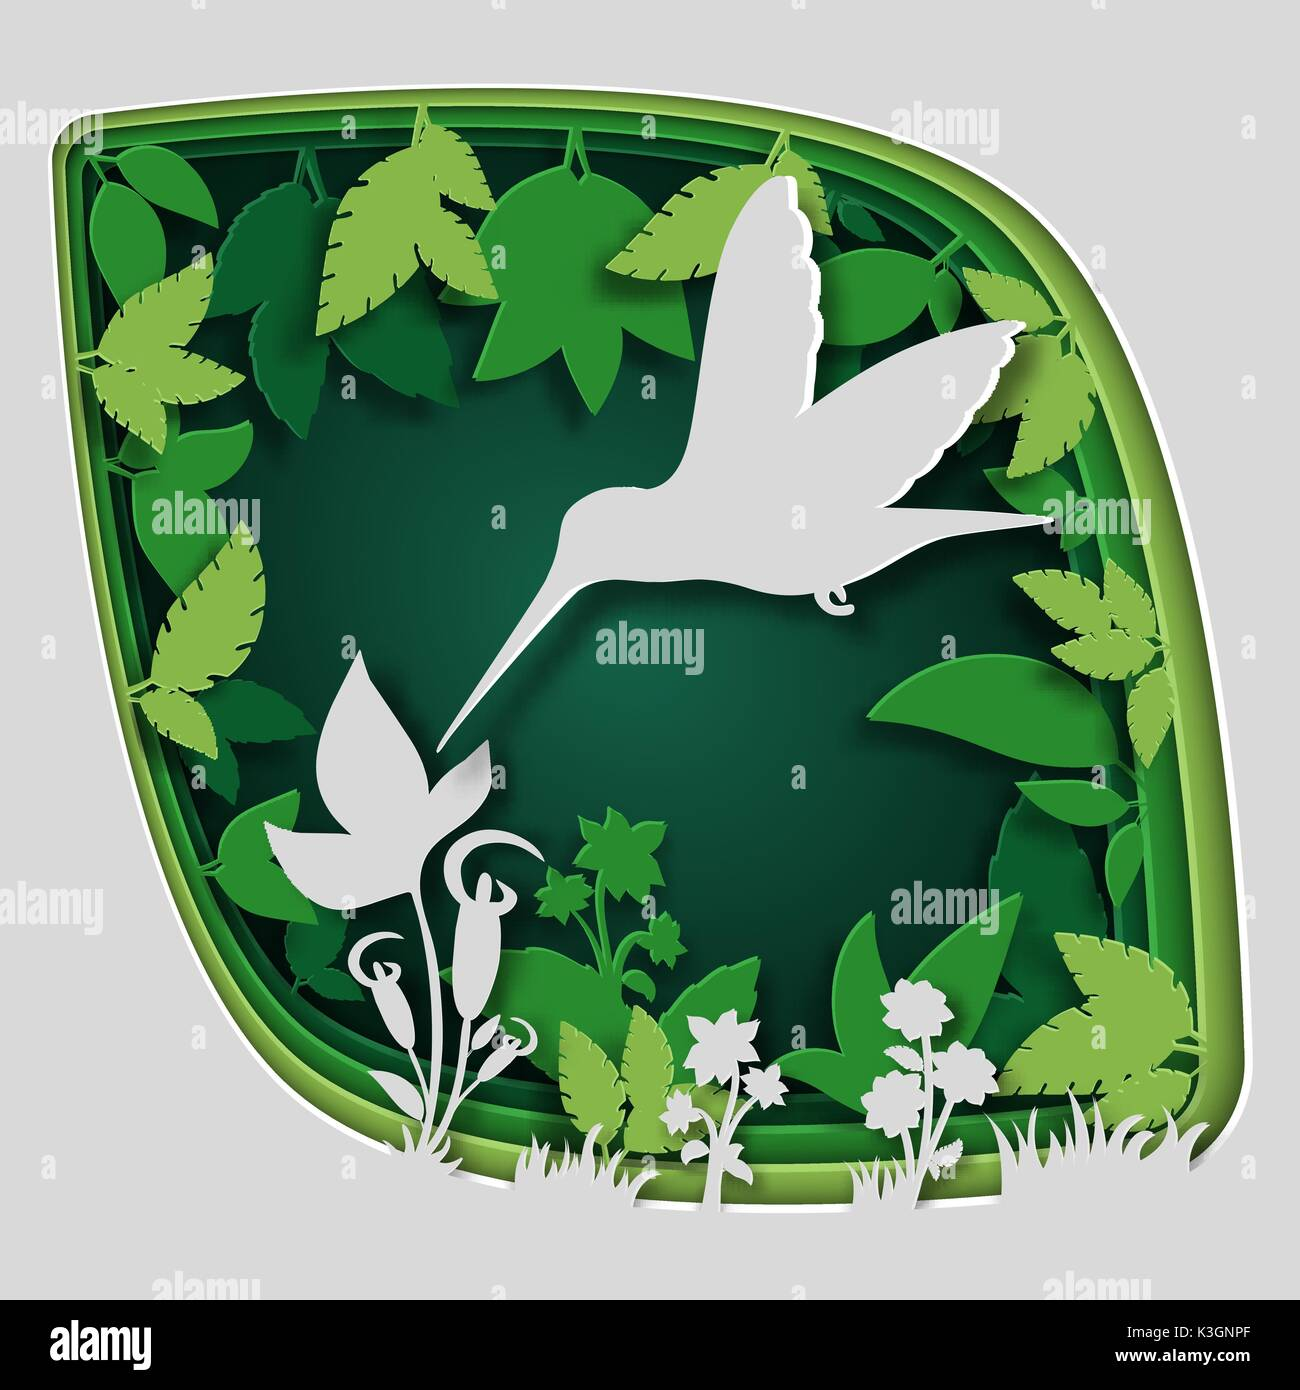 Paper Art Carve To Bird On Tree Branch In Forest At Night Origami Concept Nature And Animals Idea Vector Illustration